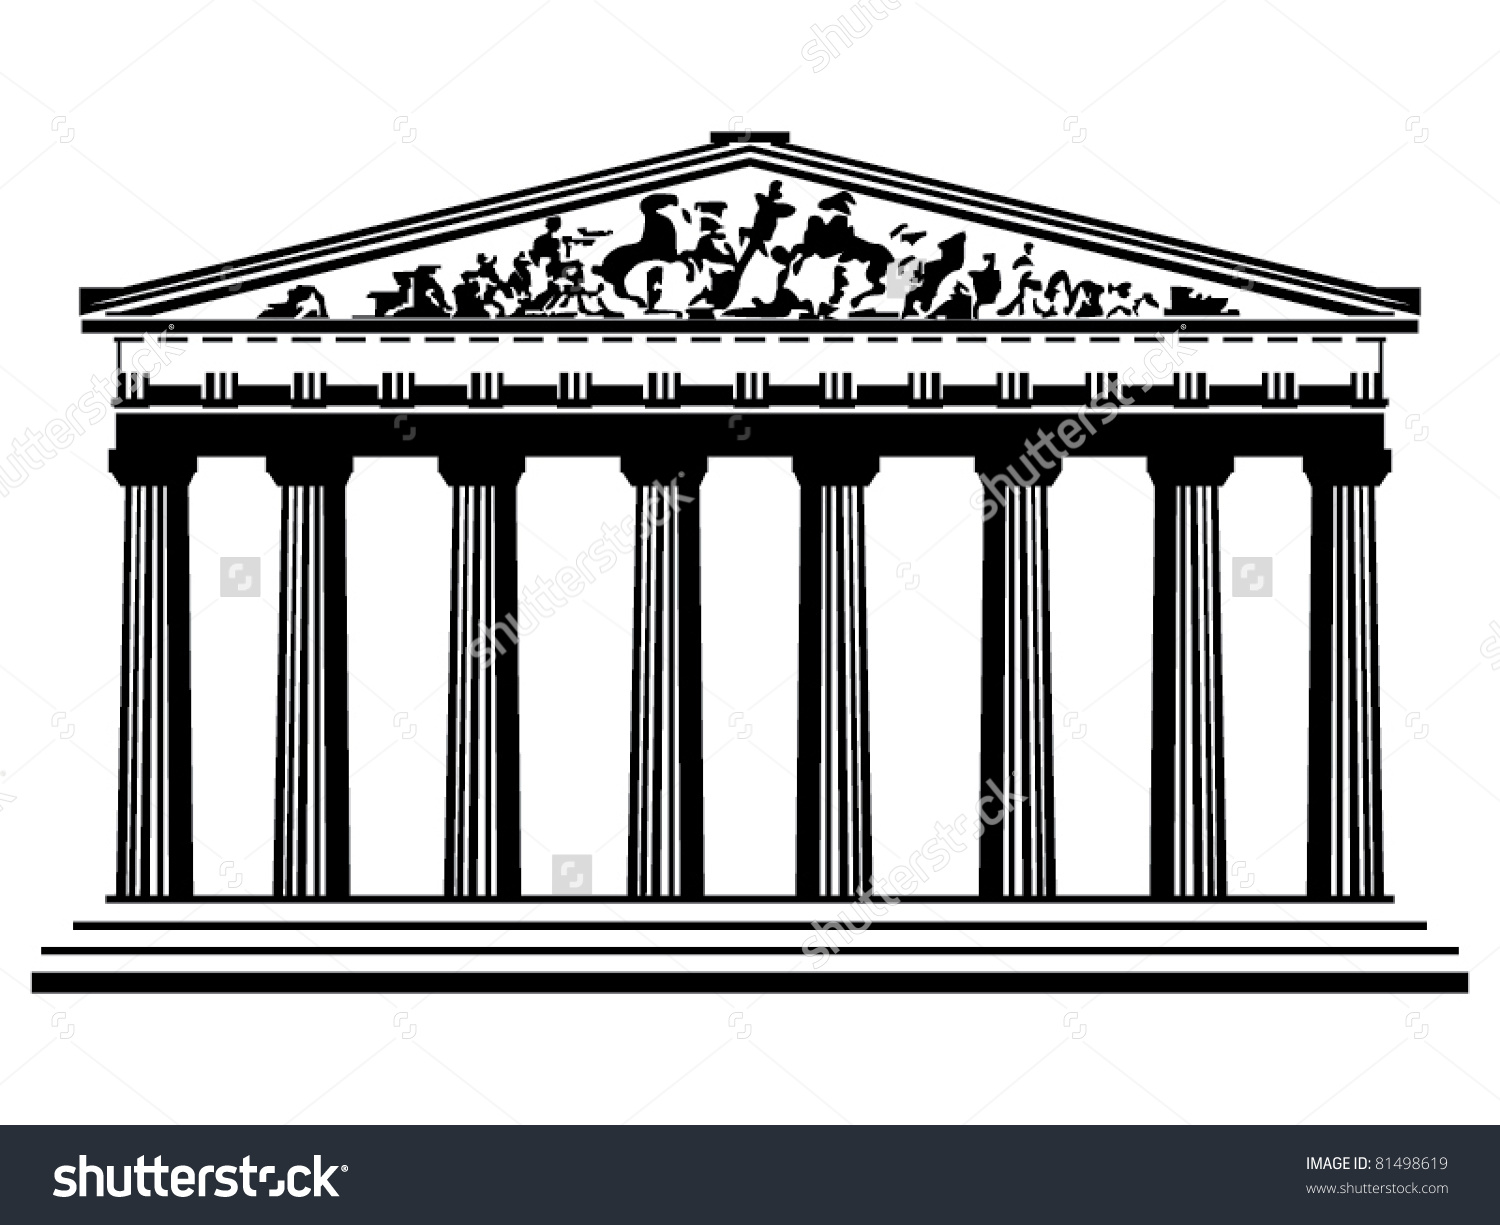 Greek shrine clipart clip art transparent library Greek Temple Vector Stock Vector 81498619 - Shutterstock clip art transparent library